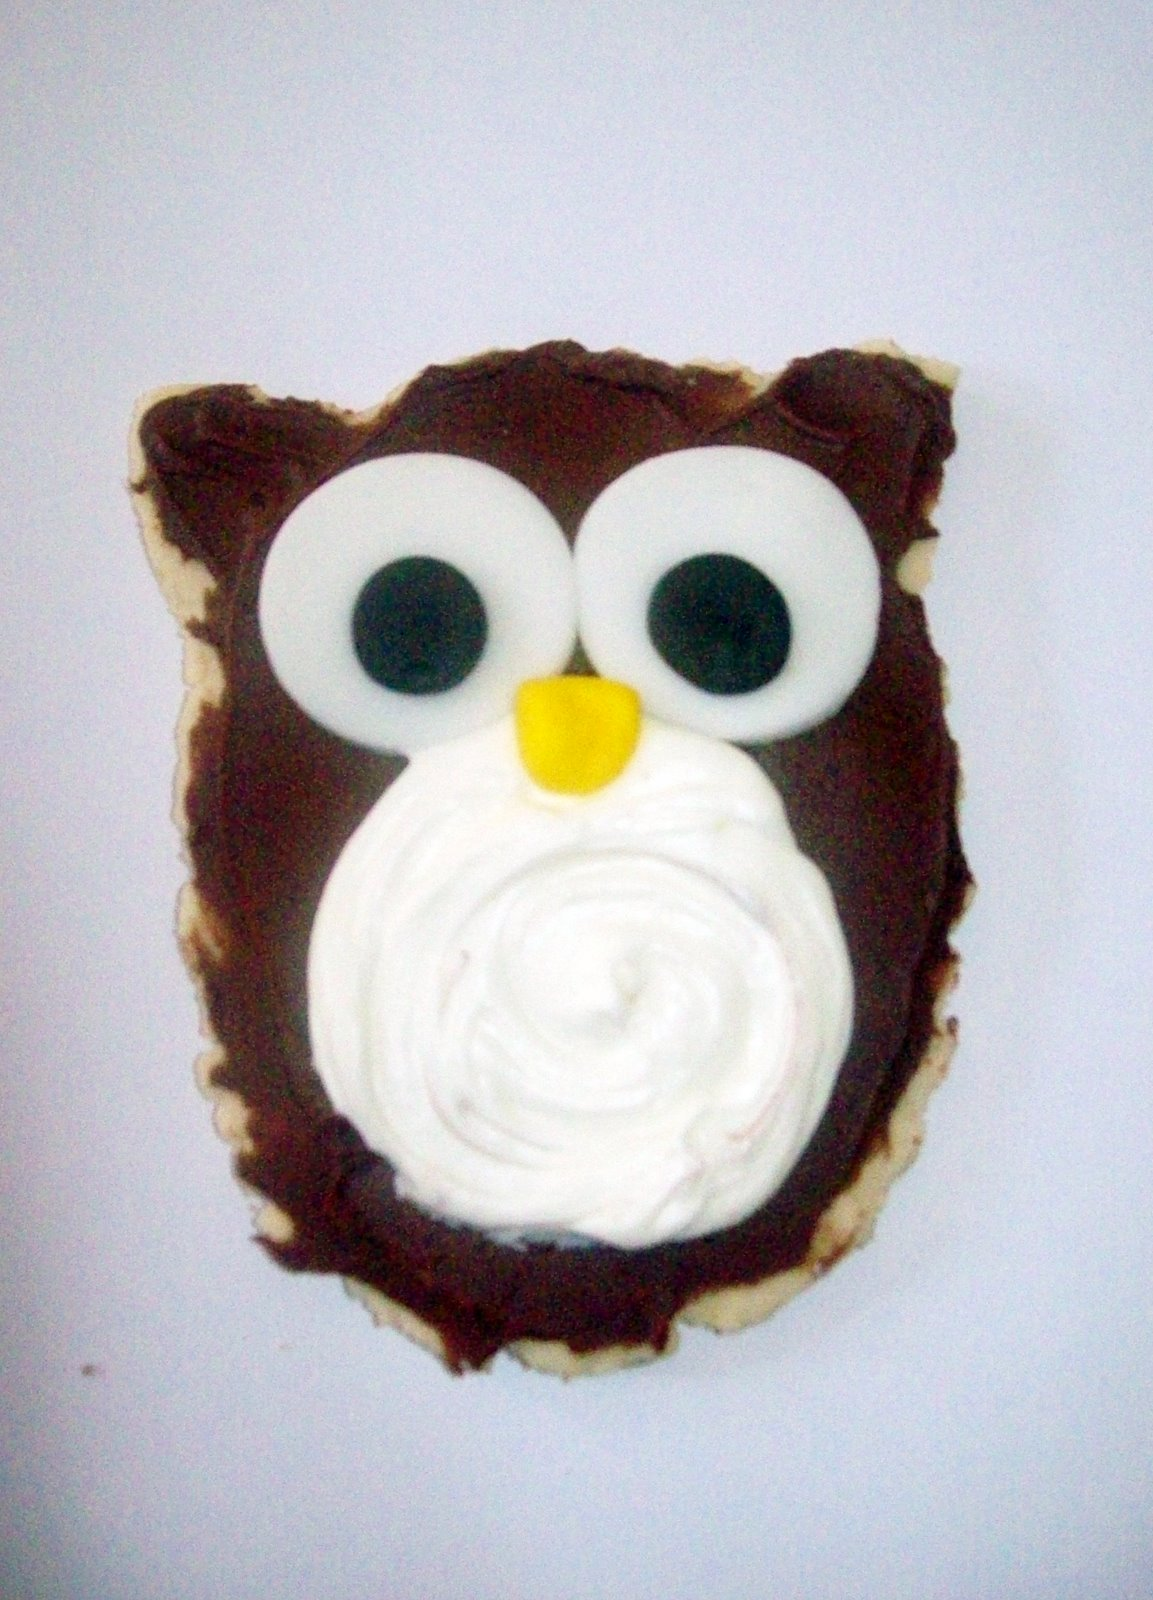 Cakes By Design: Owl Cookies